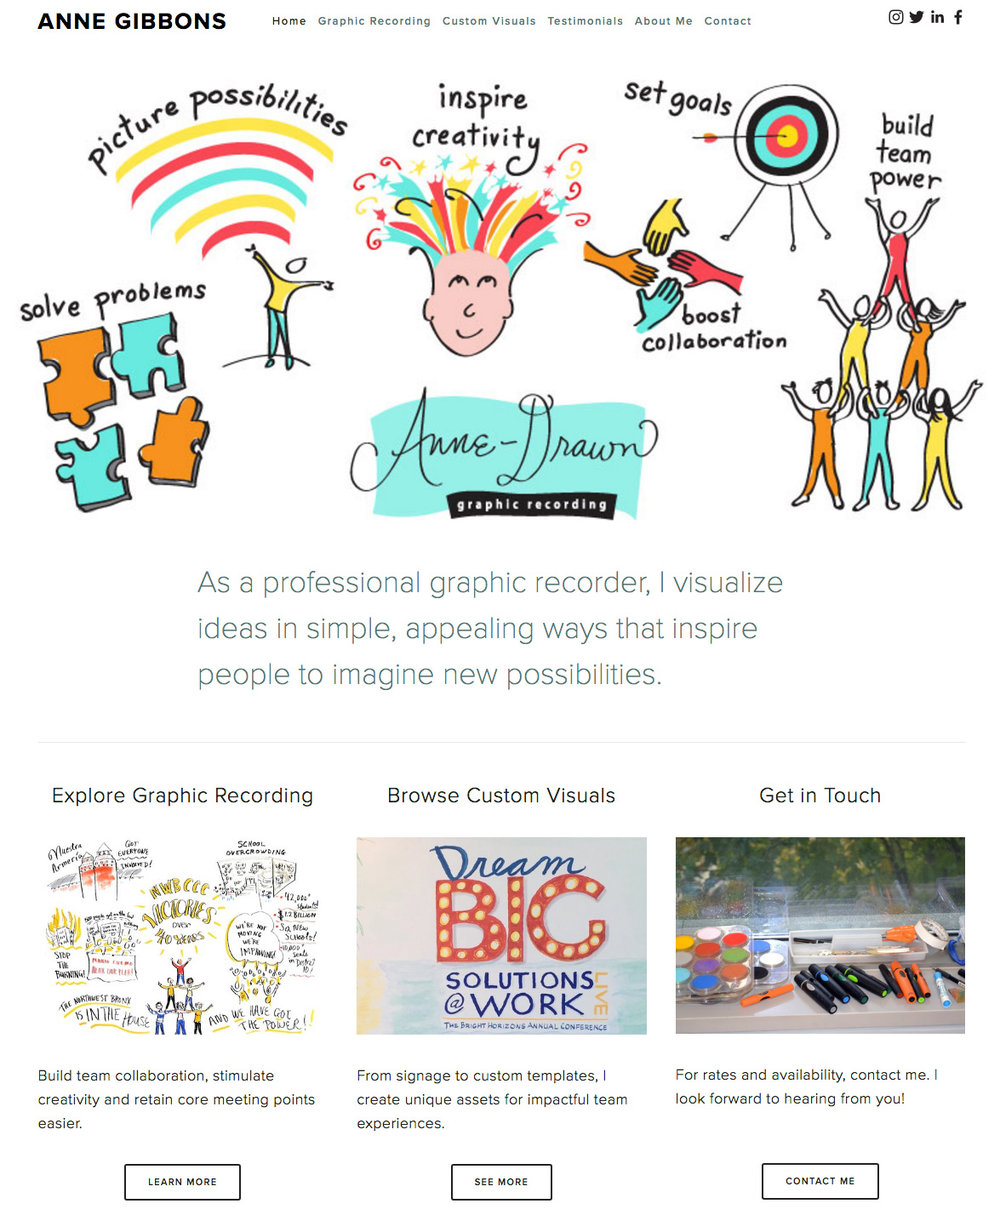 Websites david leon morgan in order for prospective clients to gain a full understanding of her skills discover examples and testimonials from past work and have a clear path to thecheapjerseys Images